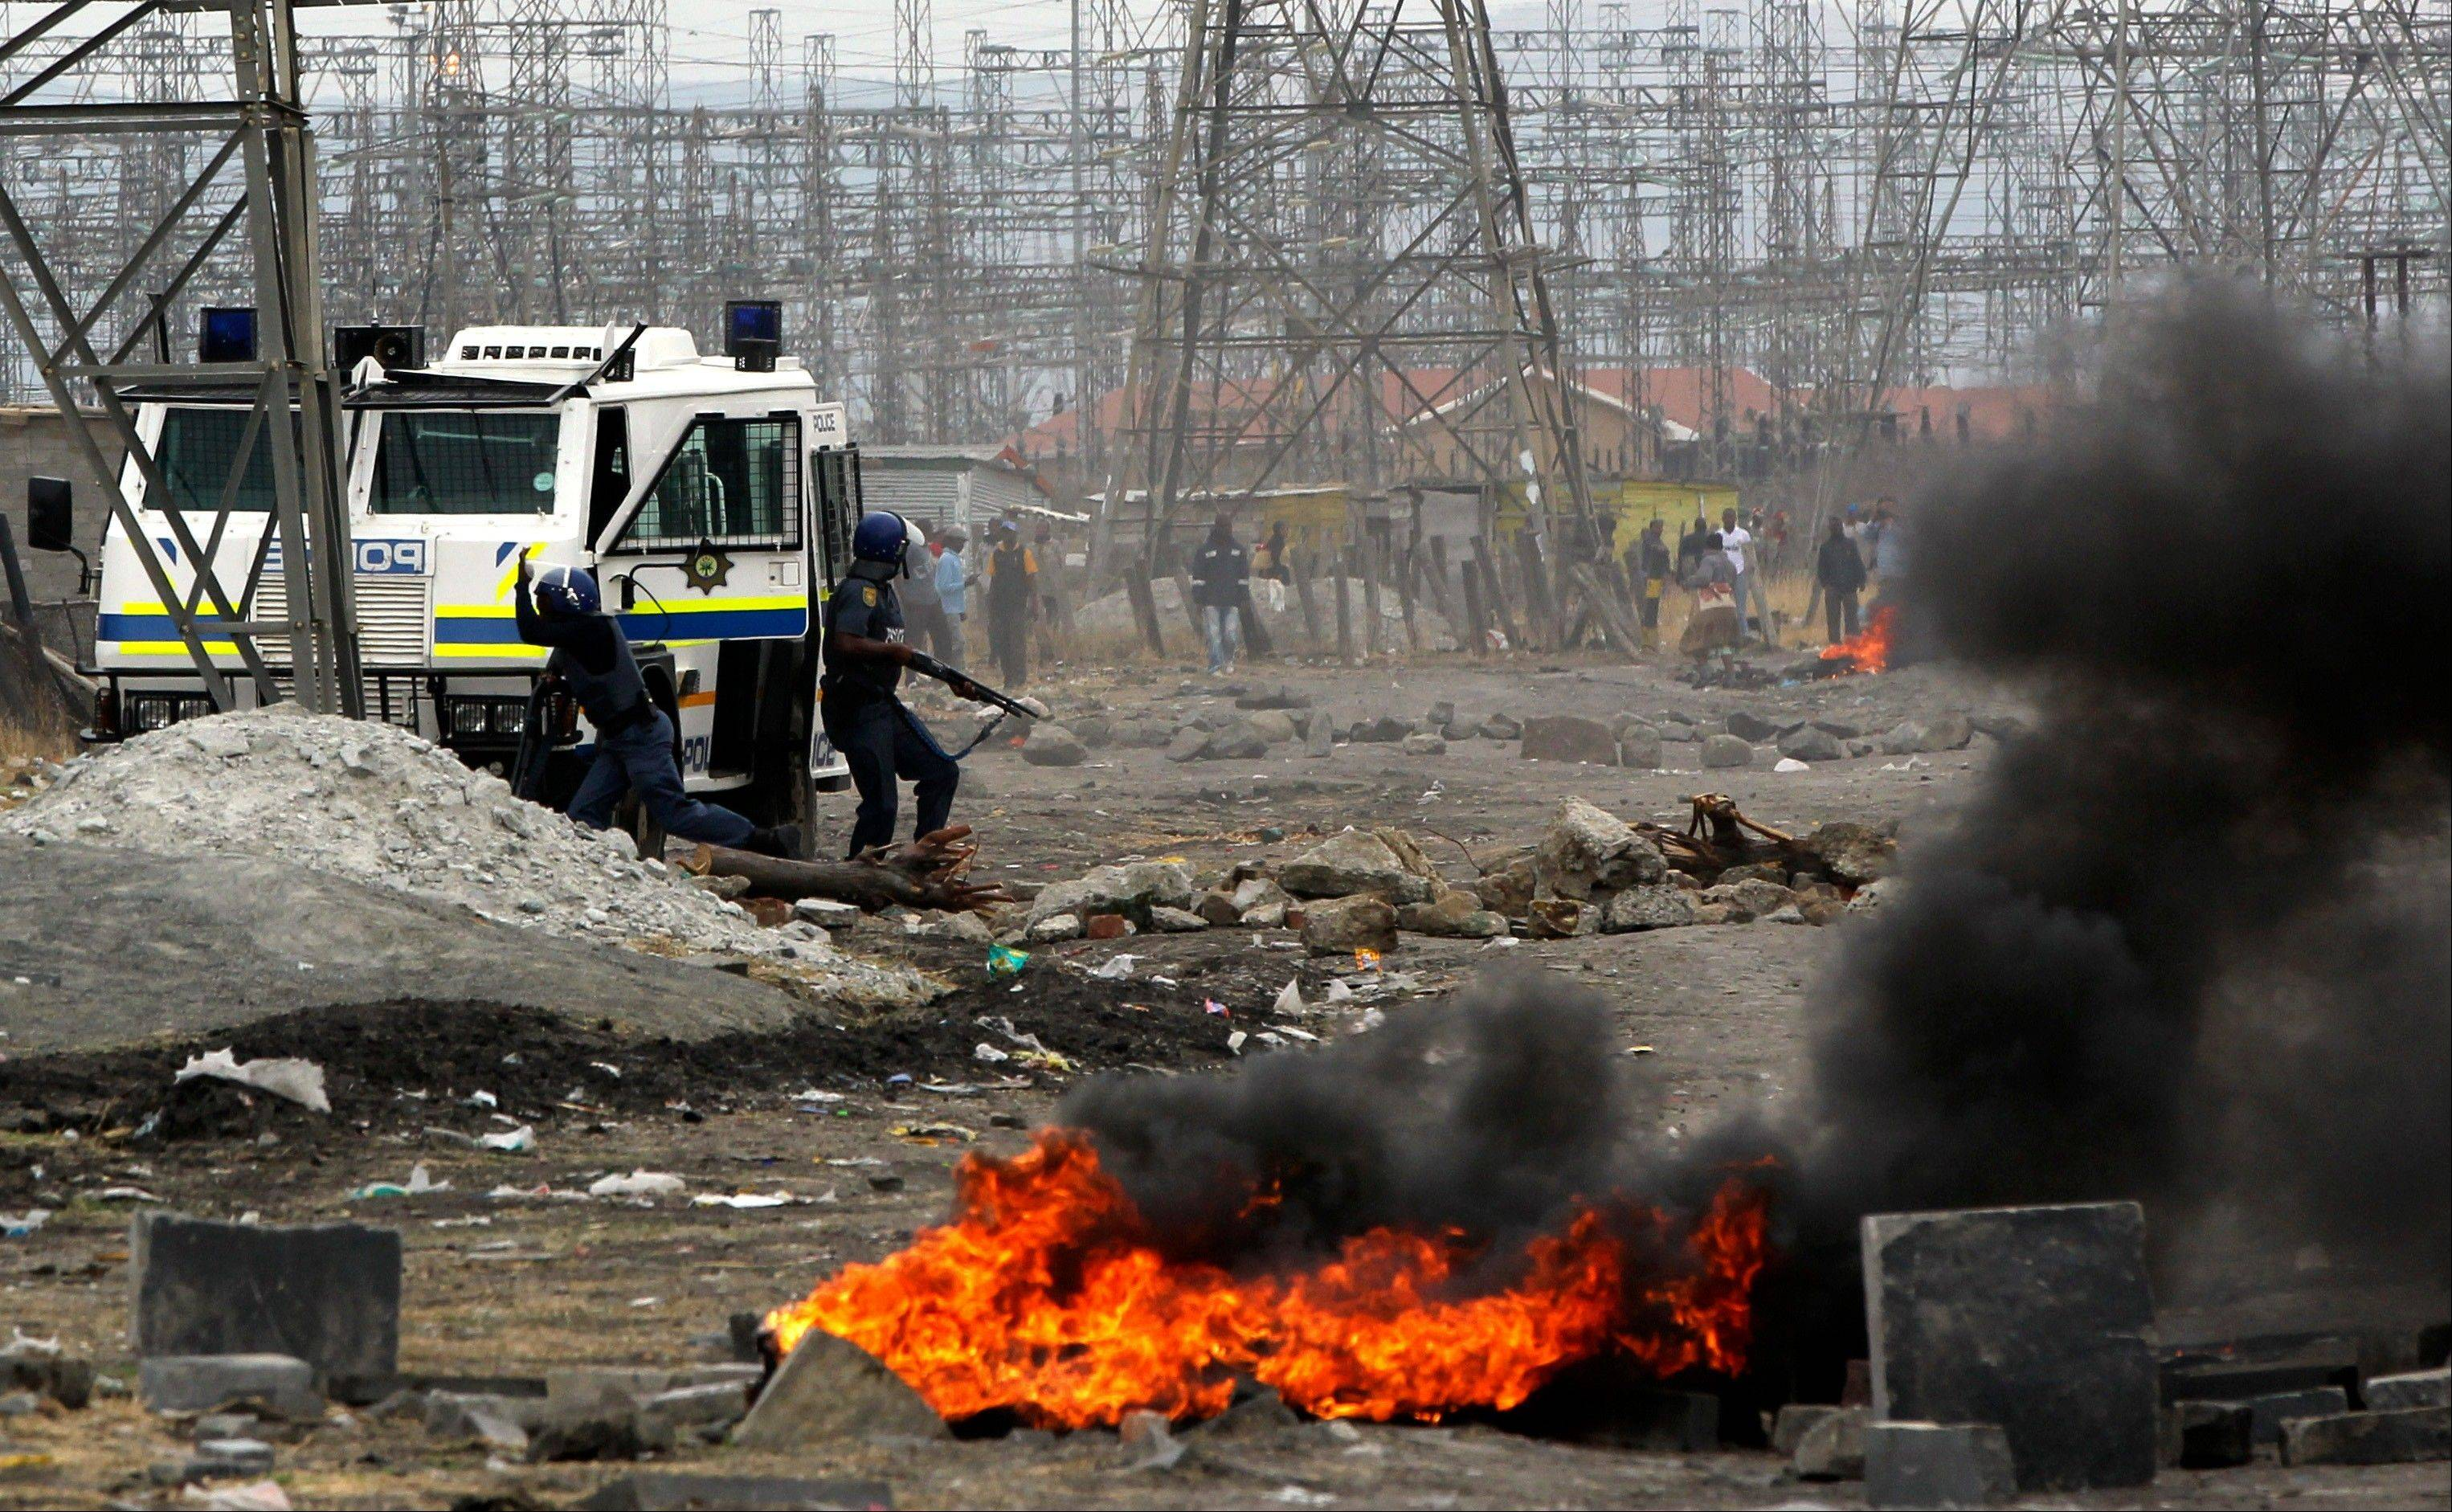 Police arrive Saturday as residents burn tires in Lonmin Platinum Mine near Rustenburg, South Africa.